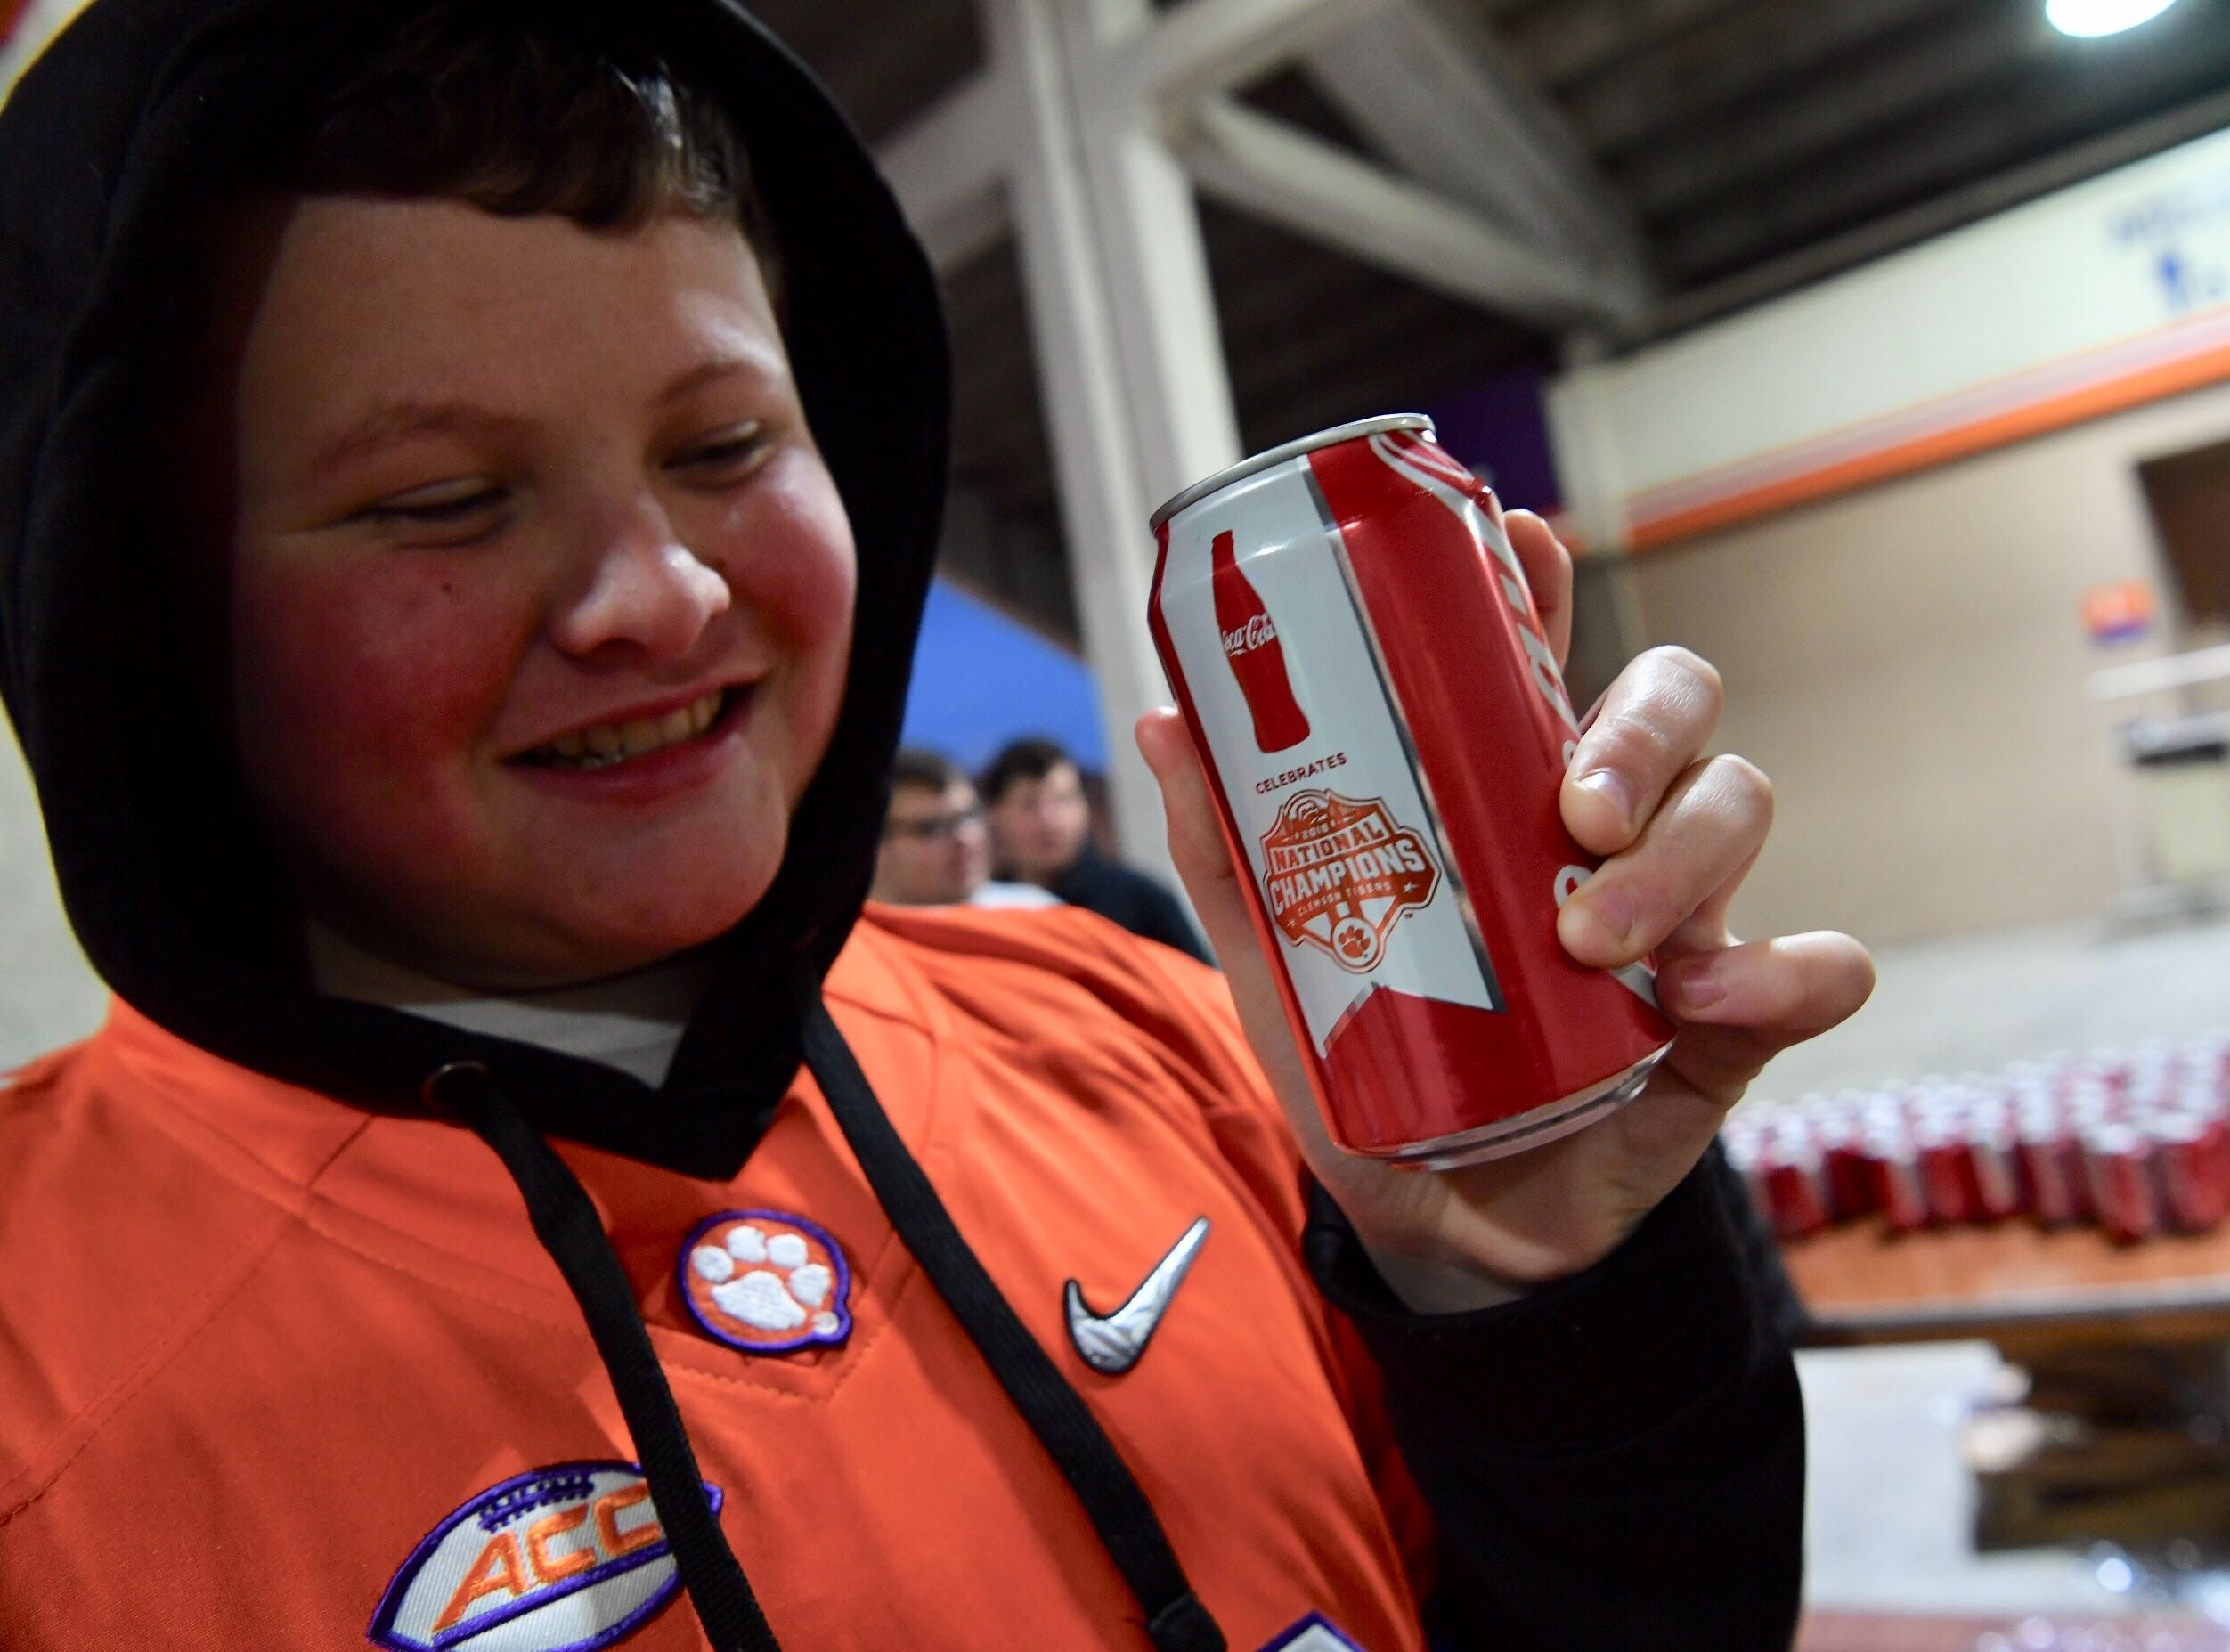 James Dean of Clinton holds one of the Clemson National Championship Coke cans given to first 2,400 at Memorial Stadium on Saturday.